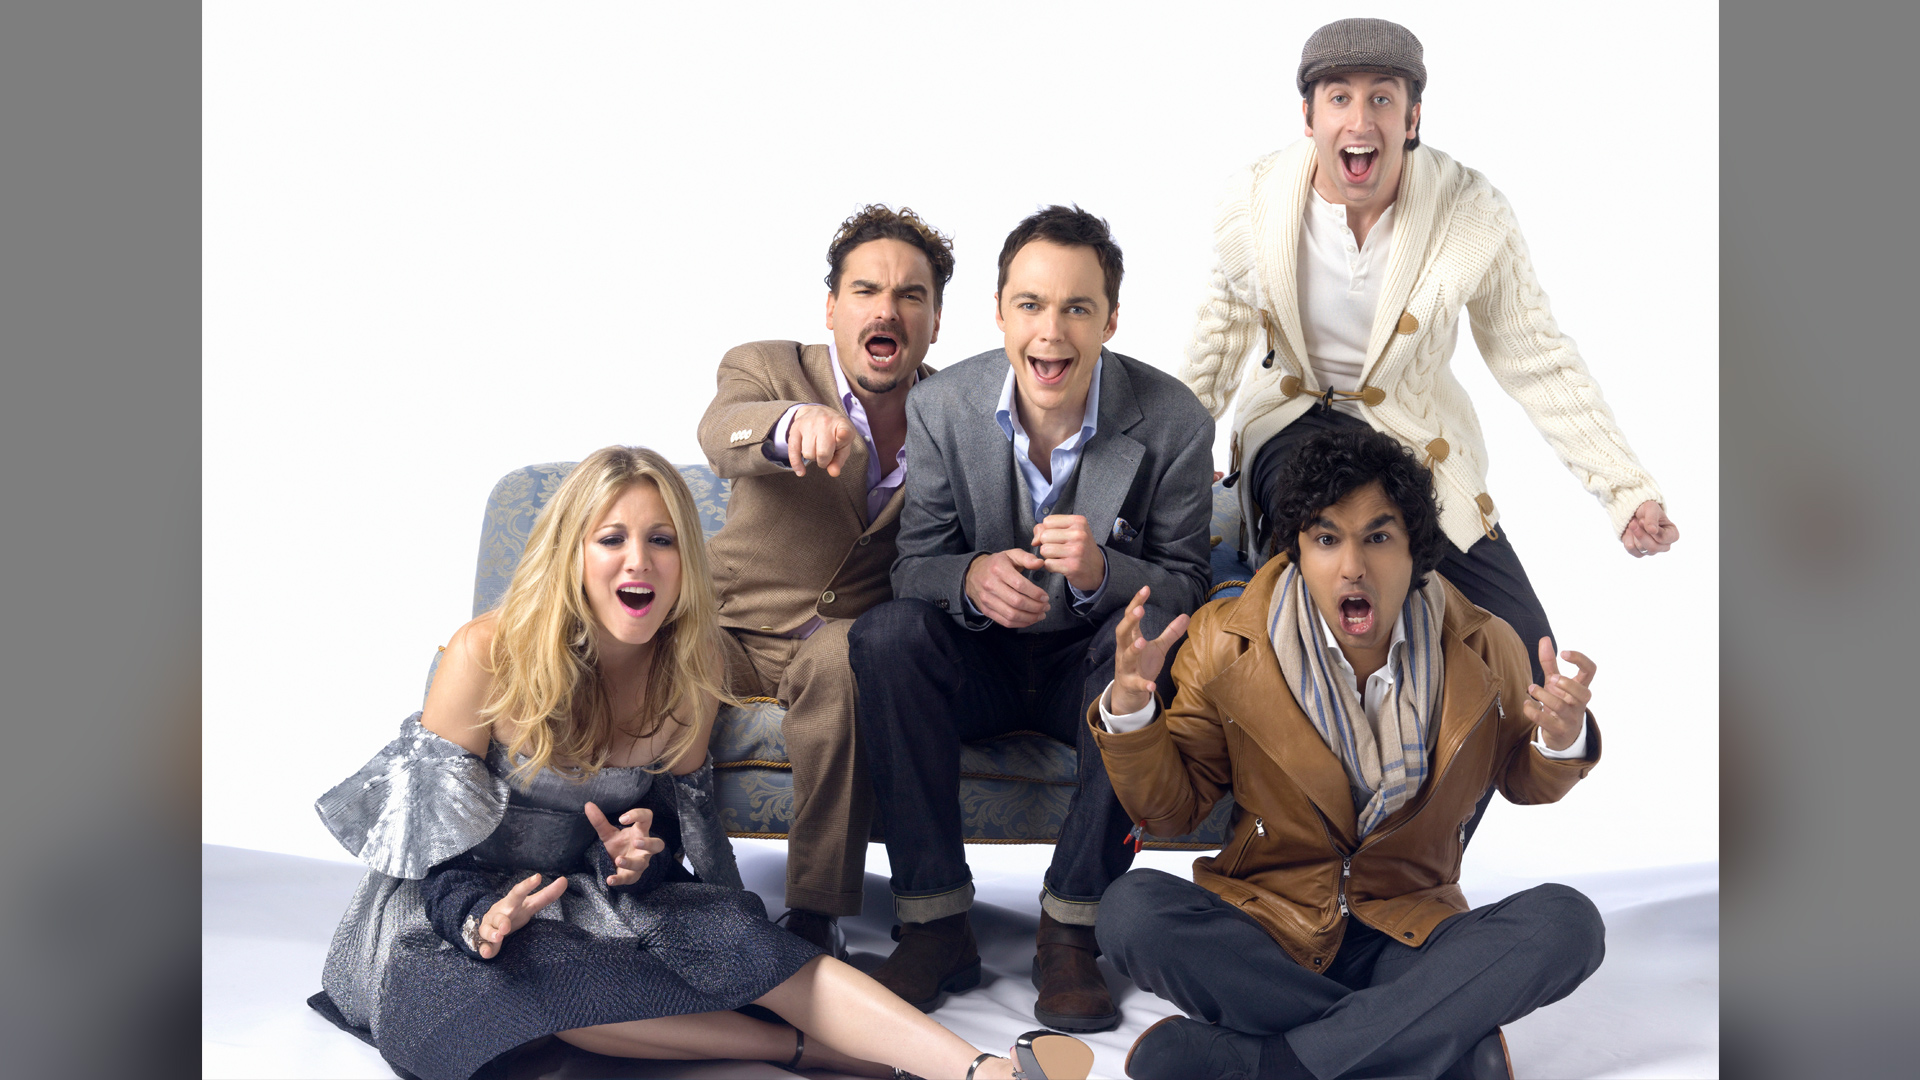 Amazing photos of The Big Bang Theory stars that we can't get enough of